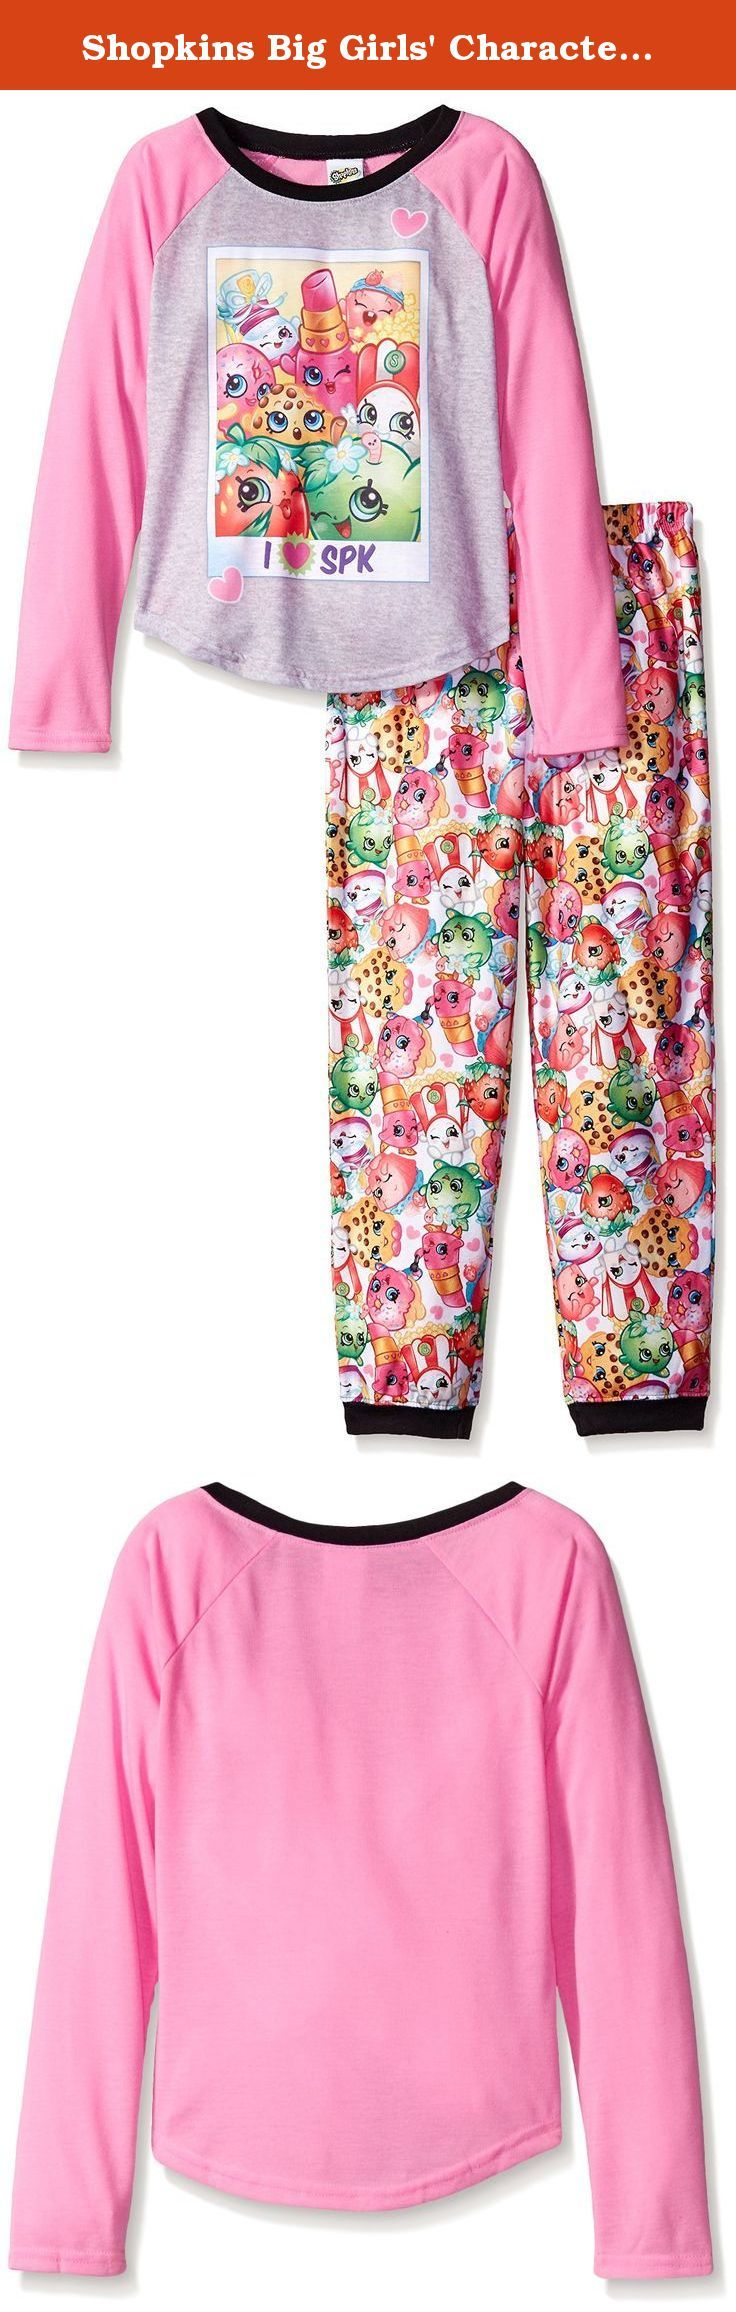 Shopkins Big Girls' Character 2-Piece Pajama Set, Pink, 10. What is there not to love about these collectible cuties your daughter is sure to go SPK-Razy over this sleepwear set with its realistic graphics, cool raglan sleeves, and jogger pant perfect for sleeping, lounging, and trading Shopkins with friends.